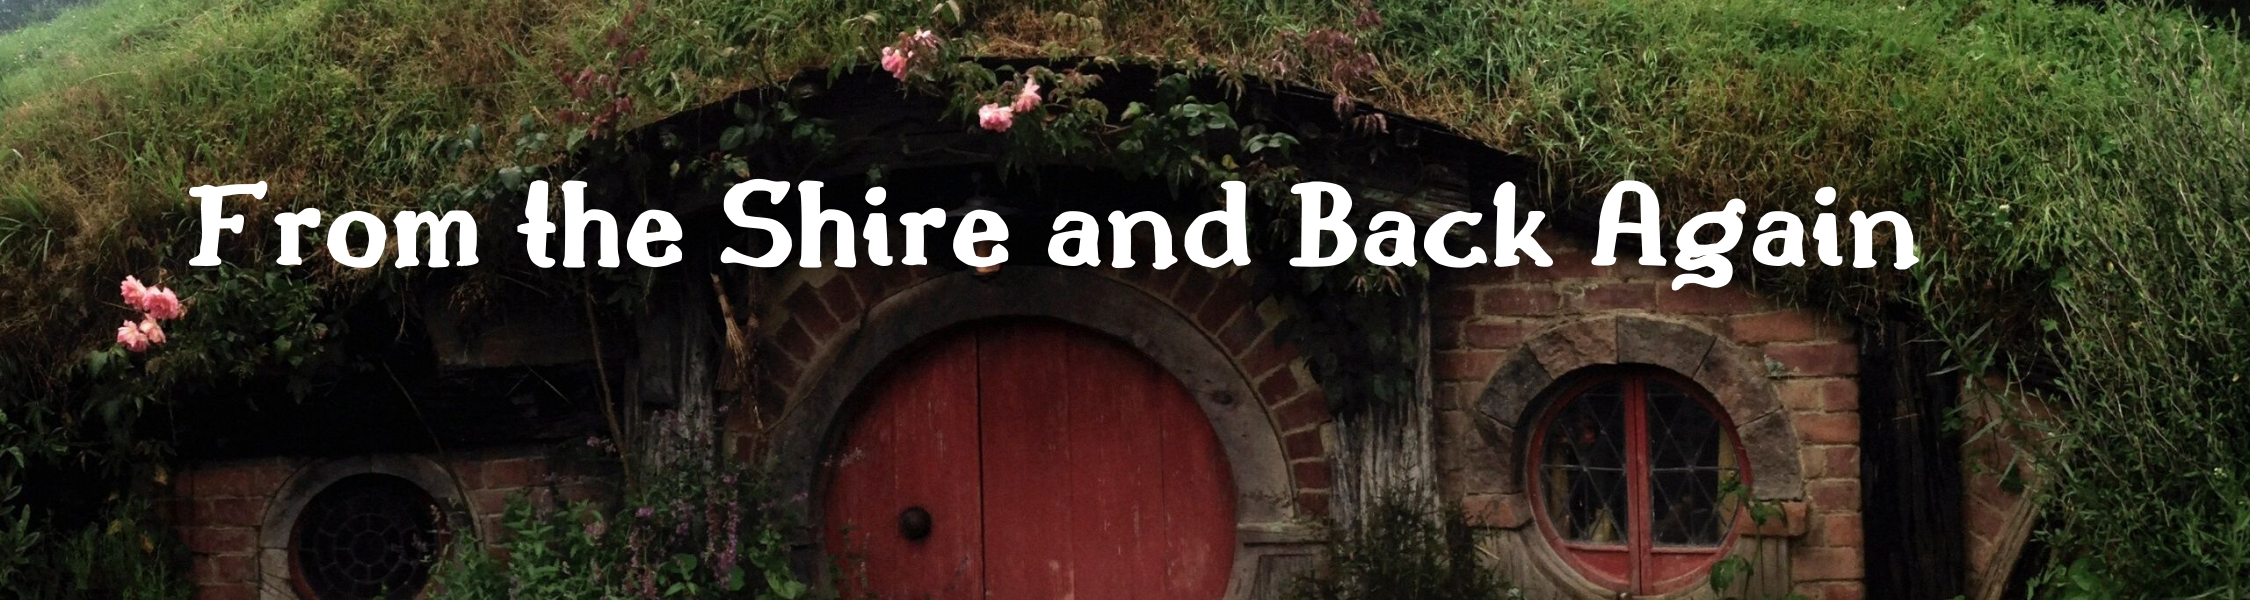 From the Shire and Back Again